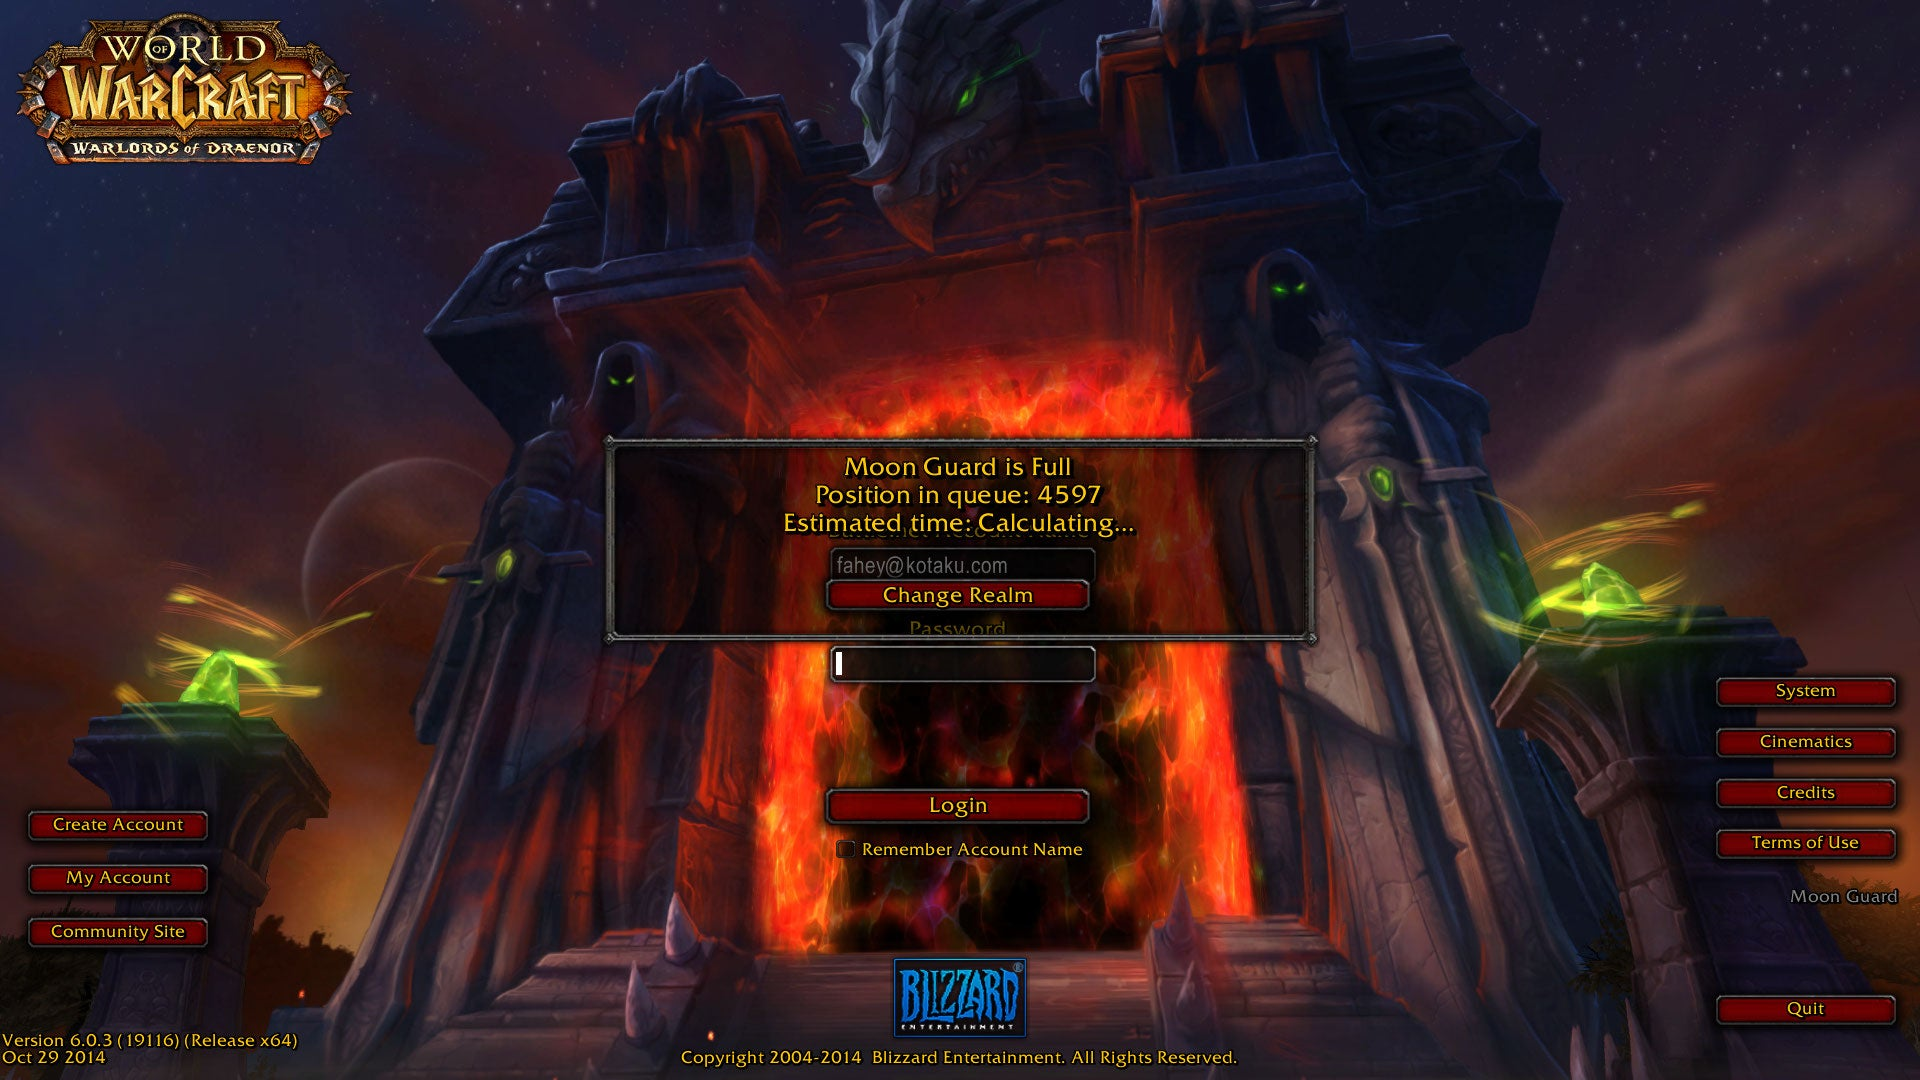 World Of Warcraft Subreddit Taken Down To Protest Login Problems